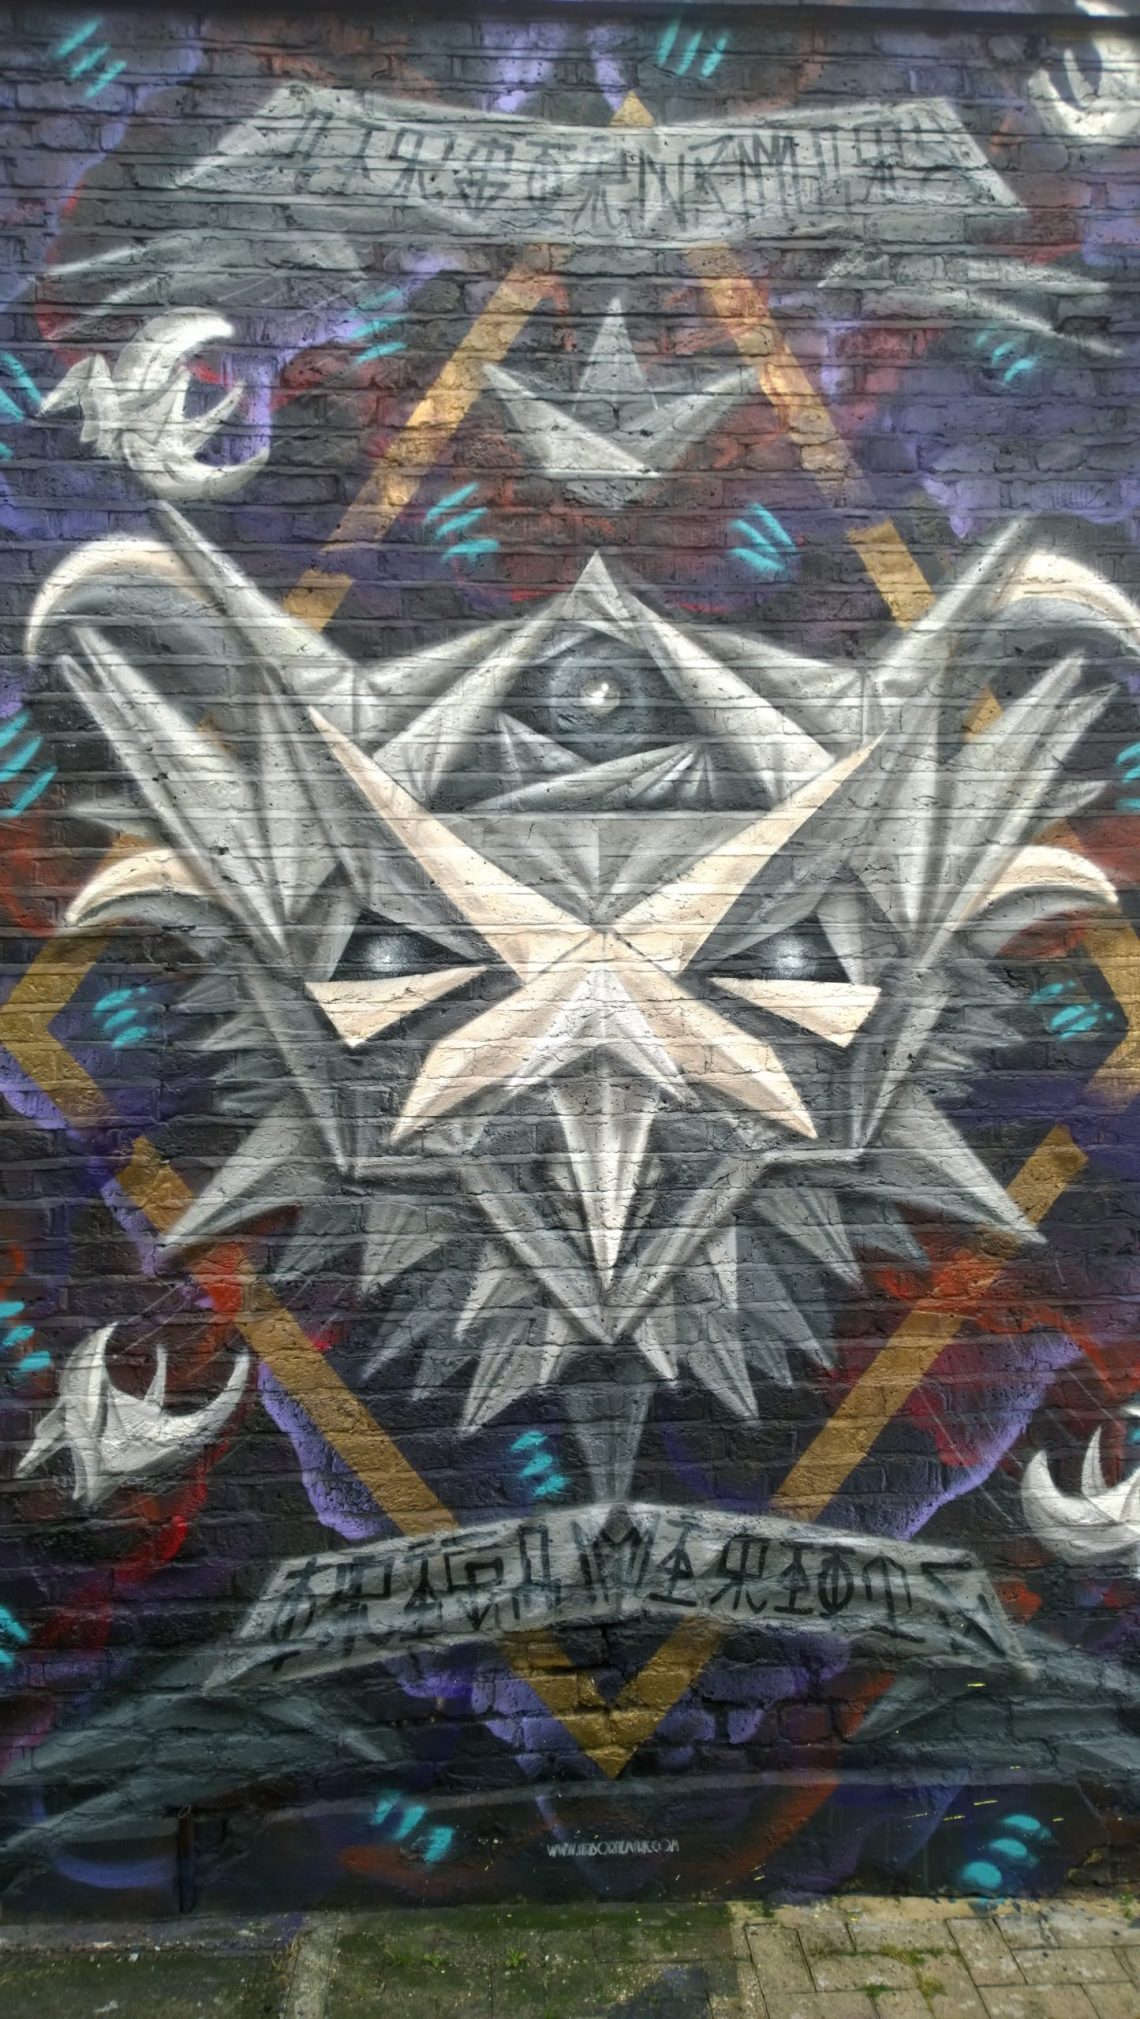 Airborne Mark has often painted in Camden and the latest piece in his 'Origami Riots' series can be found here